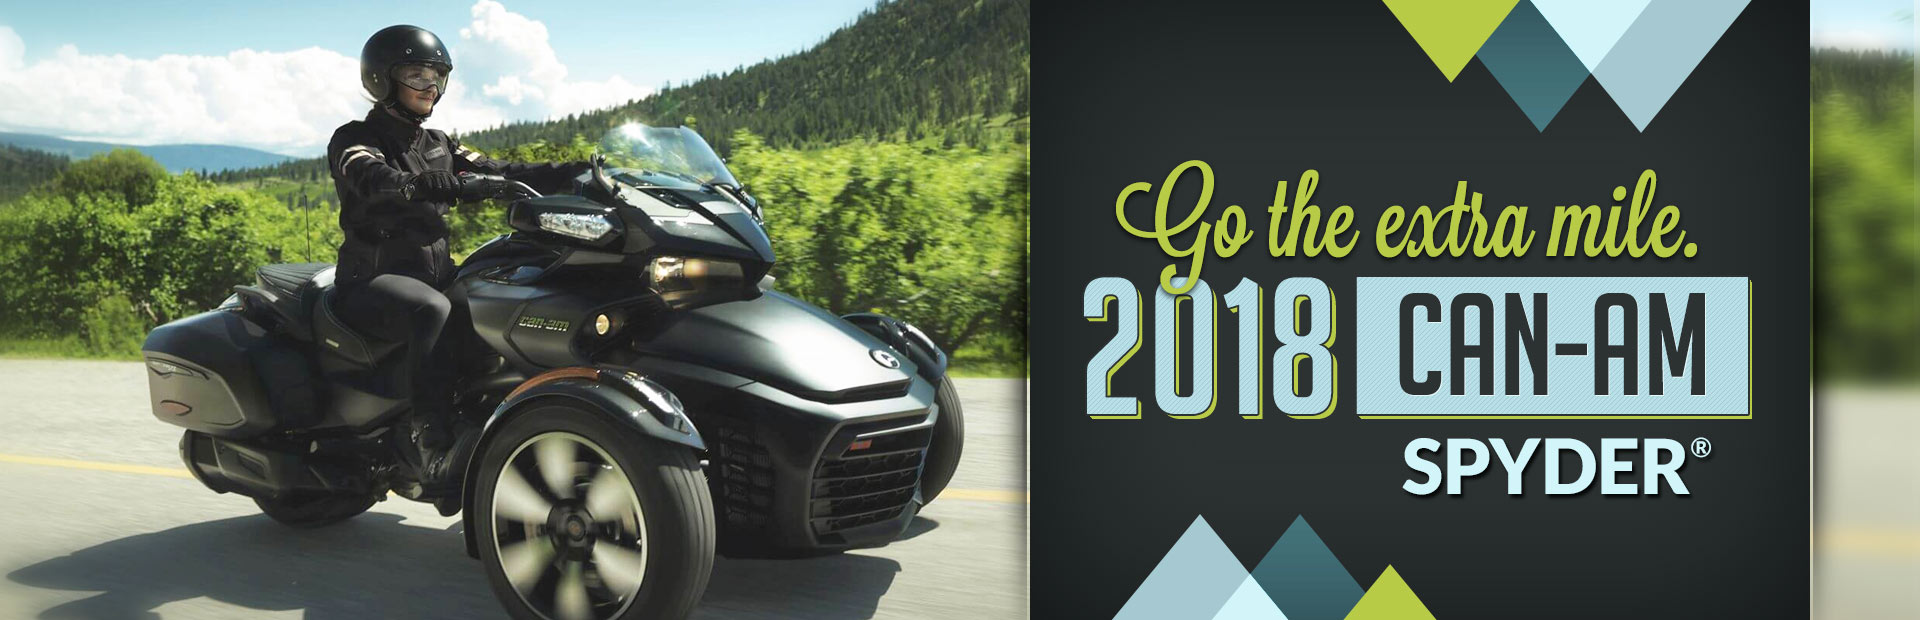 2018 Can-Am Spyder®: Click here to view the models.